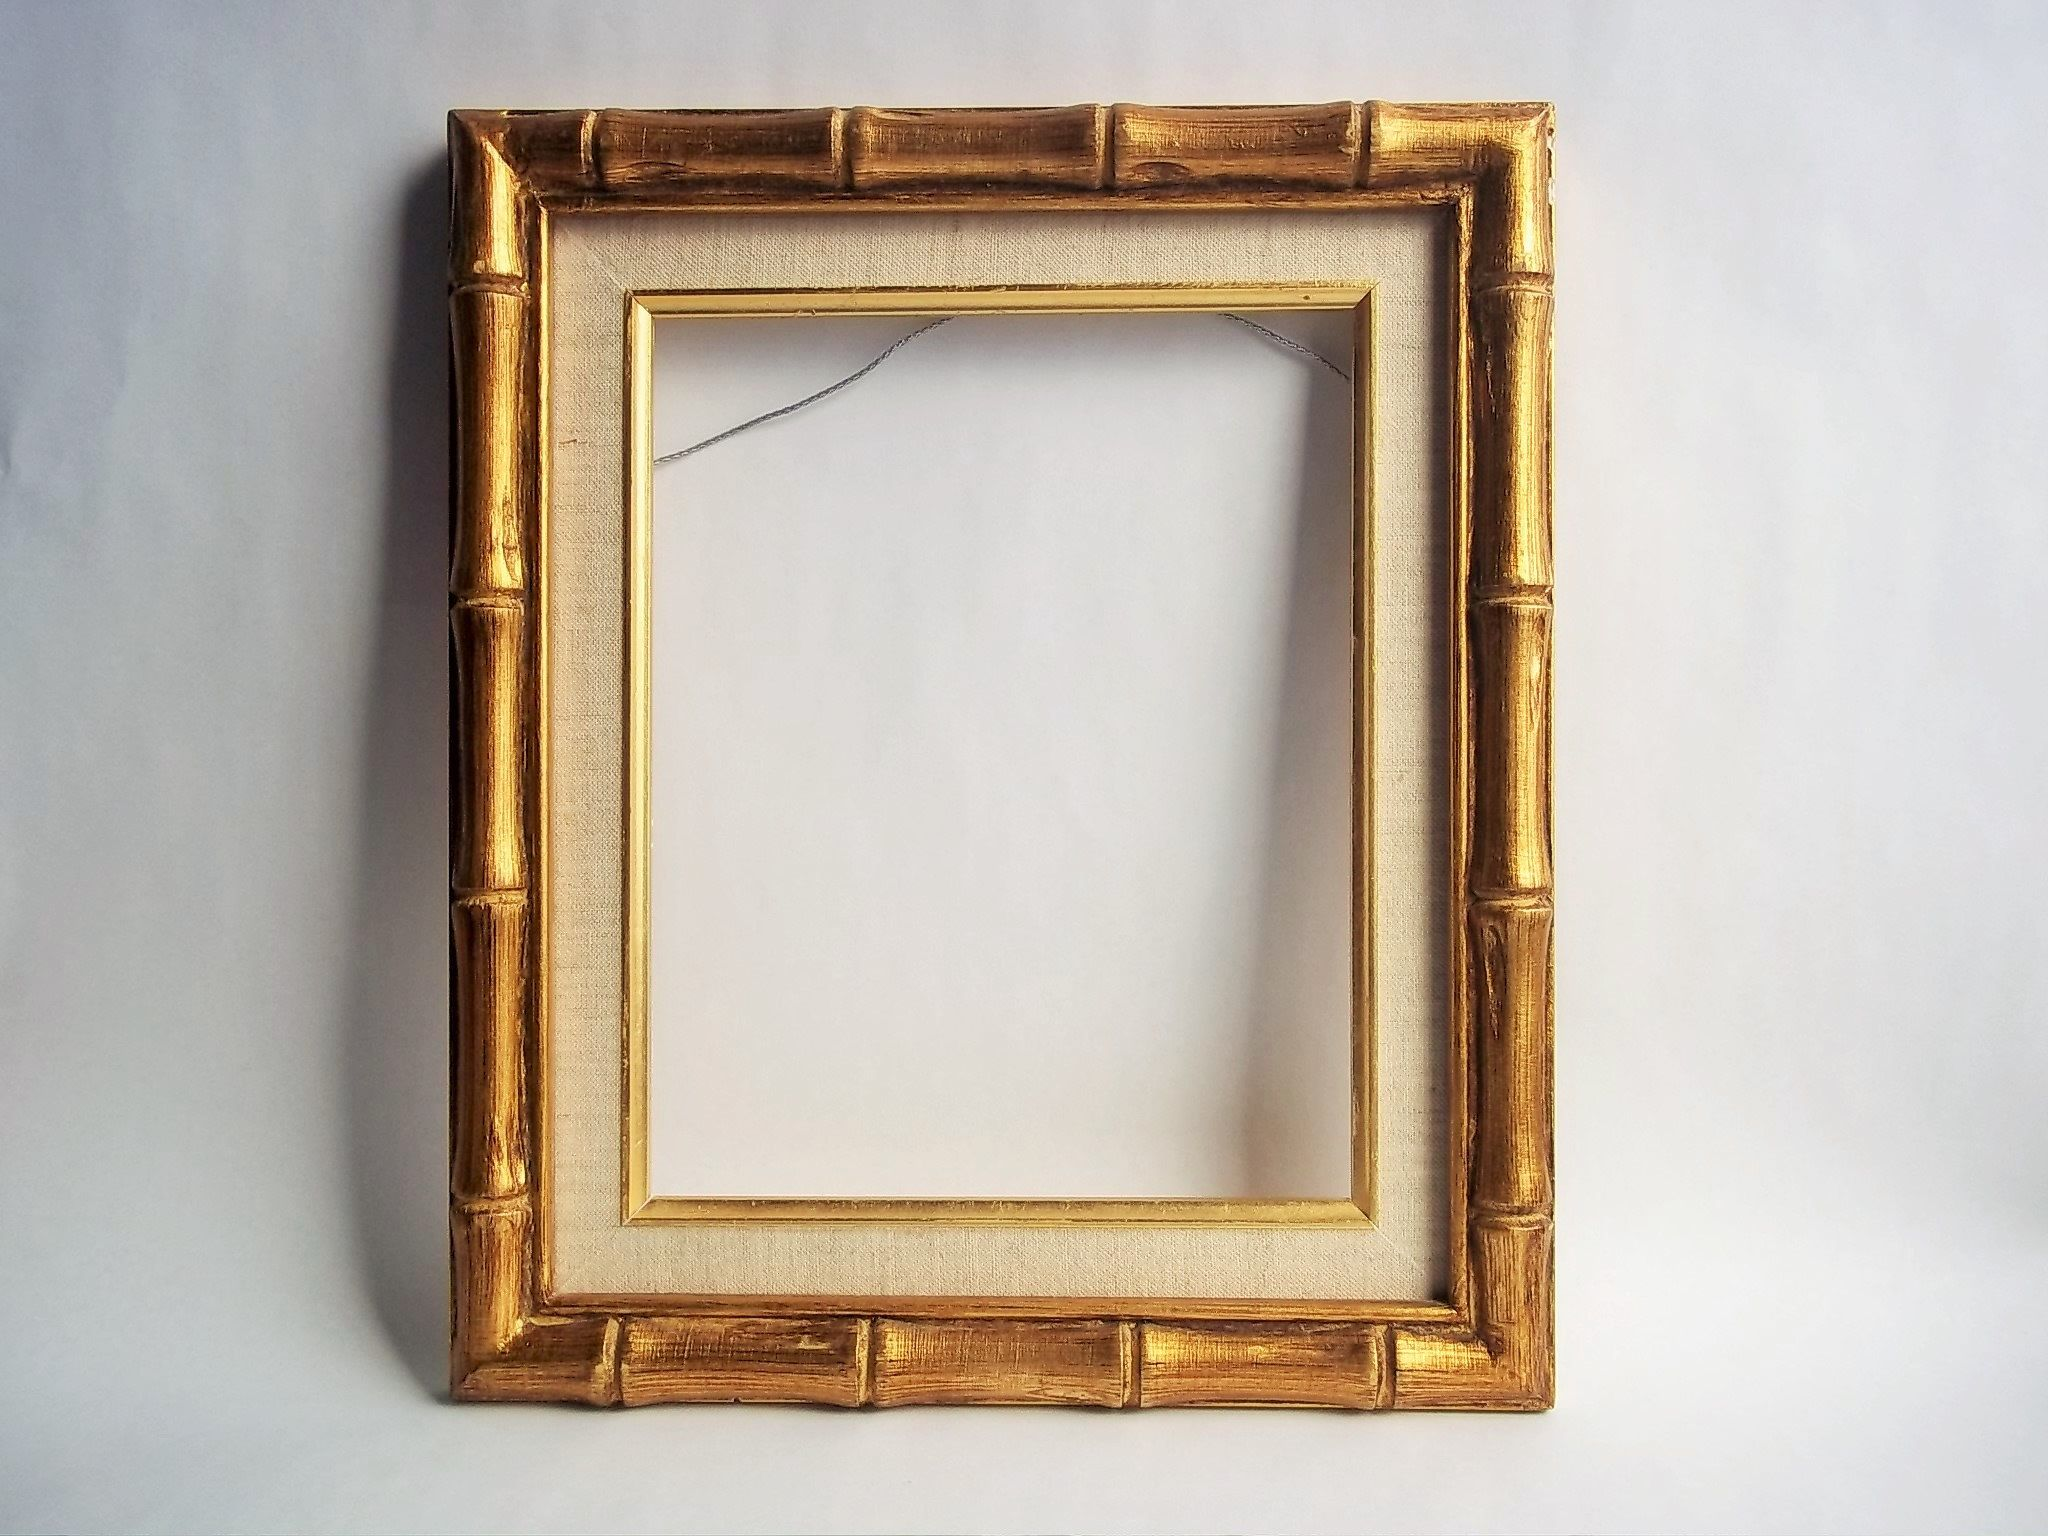 Gold Bamboo Linen Matted Frame Fits 8 X10 Total Size 12 X14 Vintage Frame Wired And Ready To Hang By Throwitfo Gold Picture Frames Frame Vintage Frames